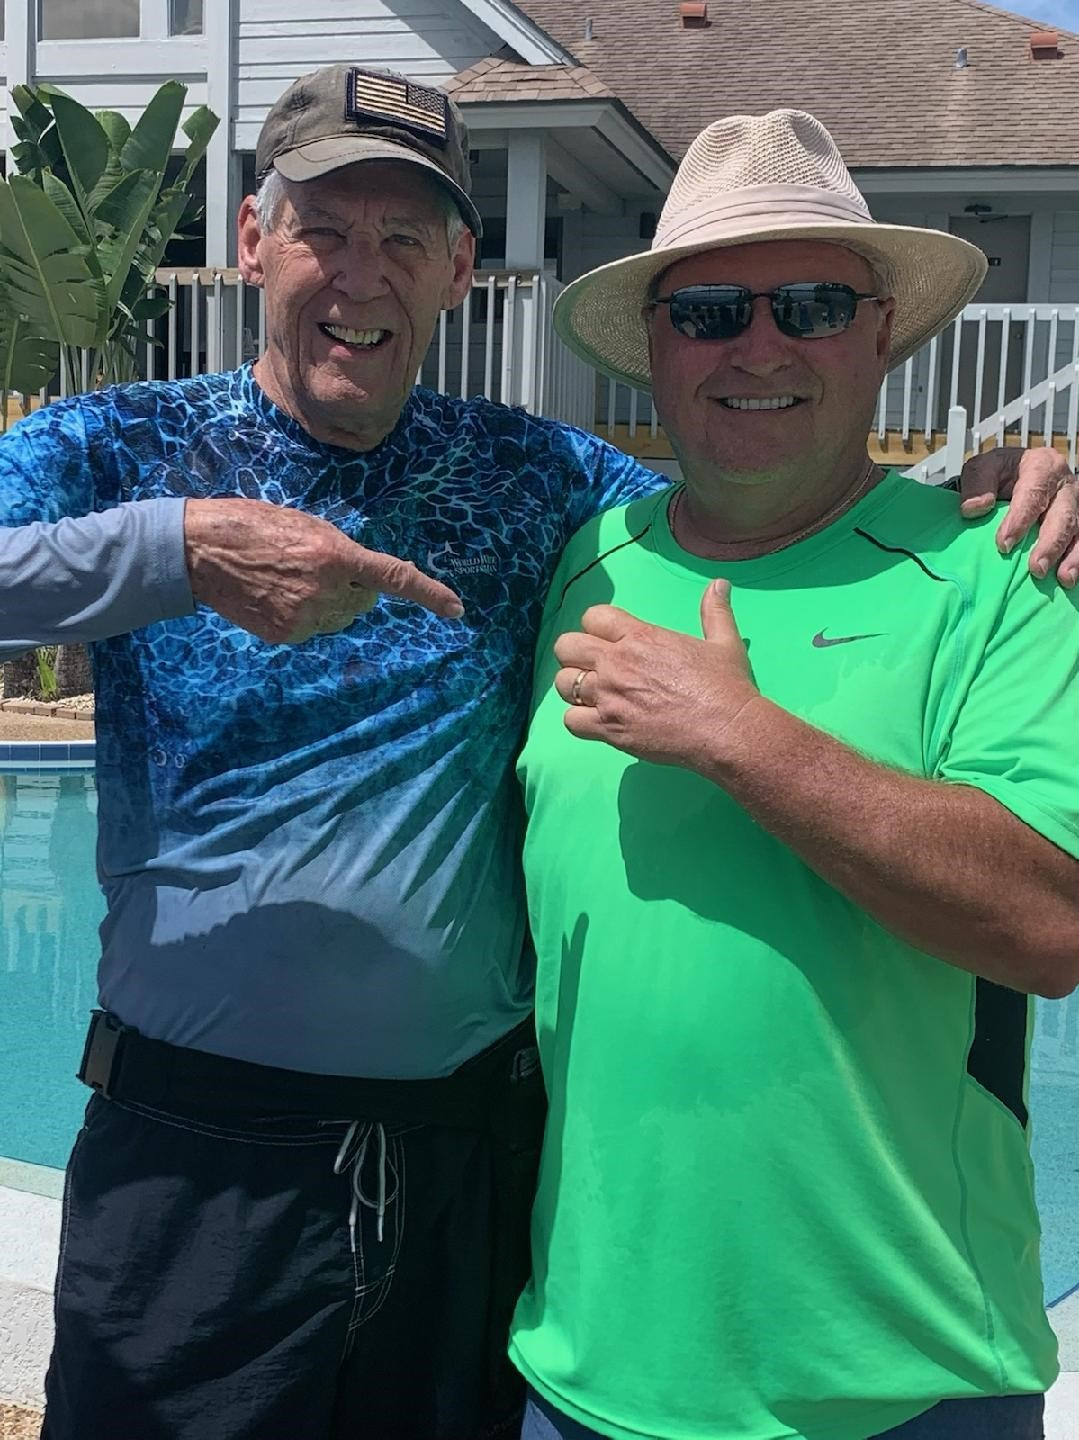 Ring Lost In Siesta Key Intercoastal, Recovered By Srarc